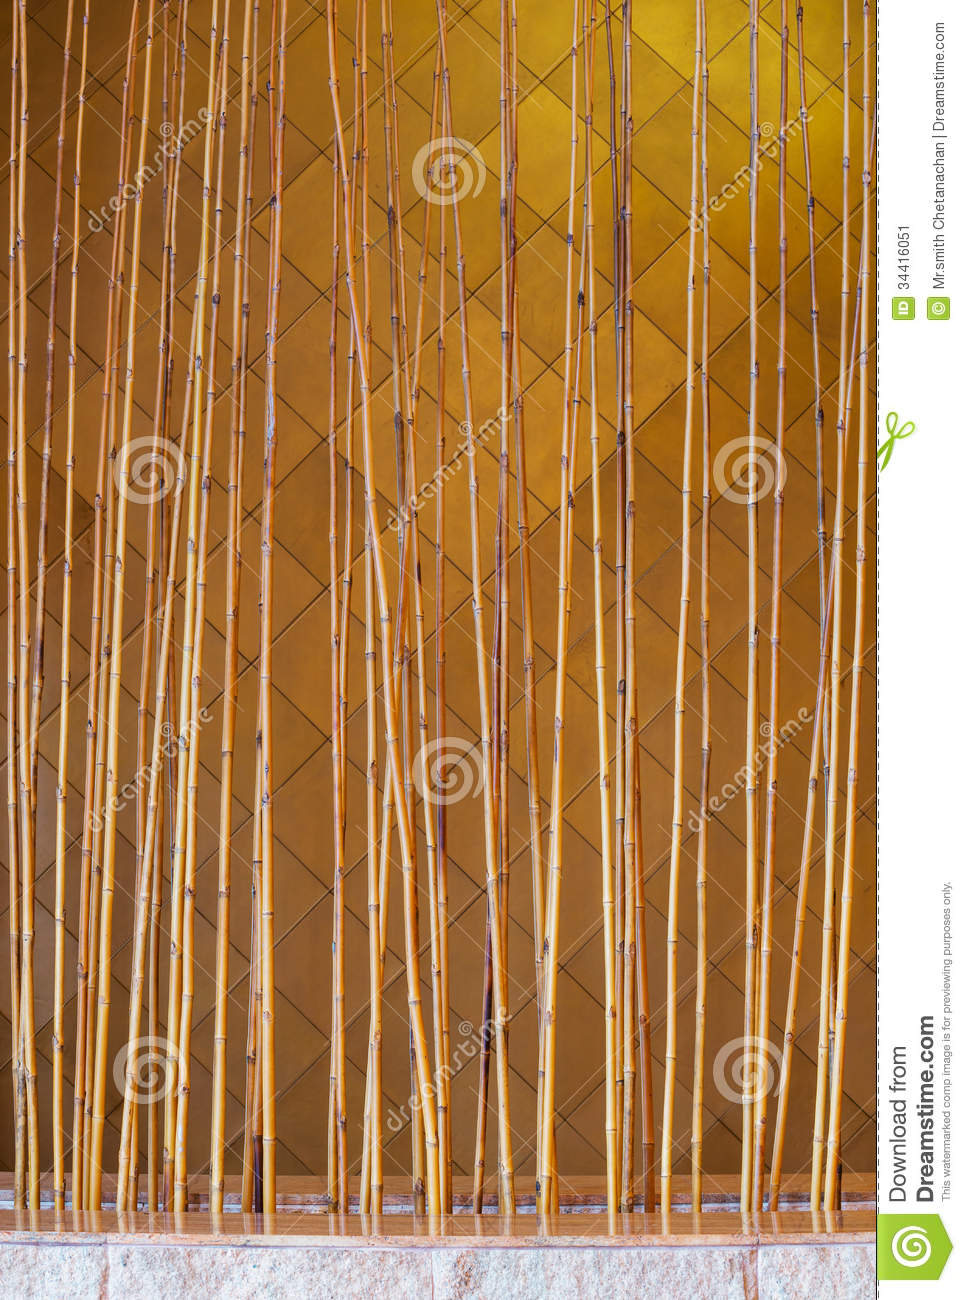 Bamboo fence stock image image 34416051 for Babou decoration